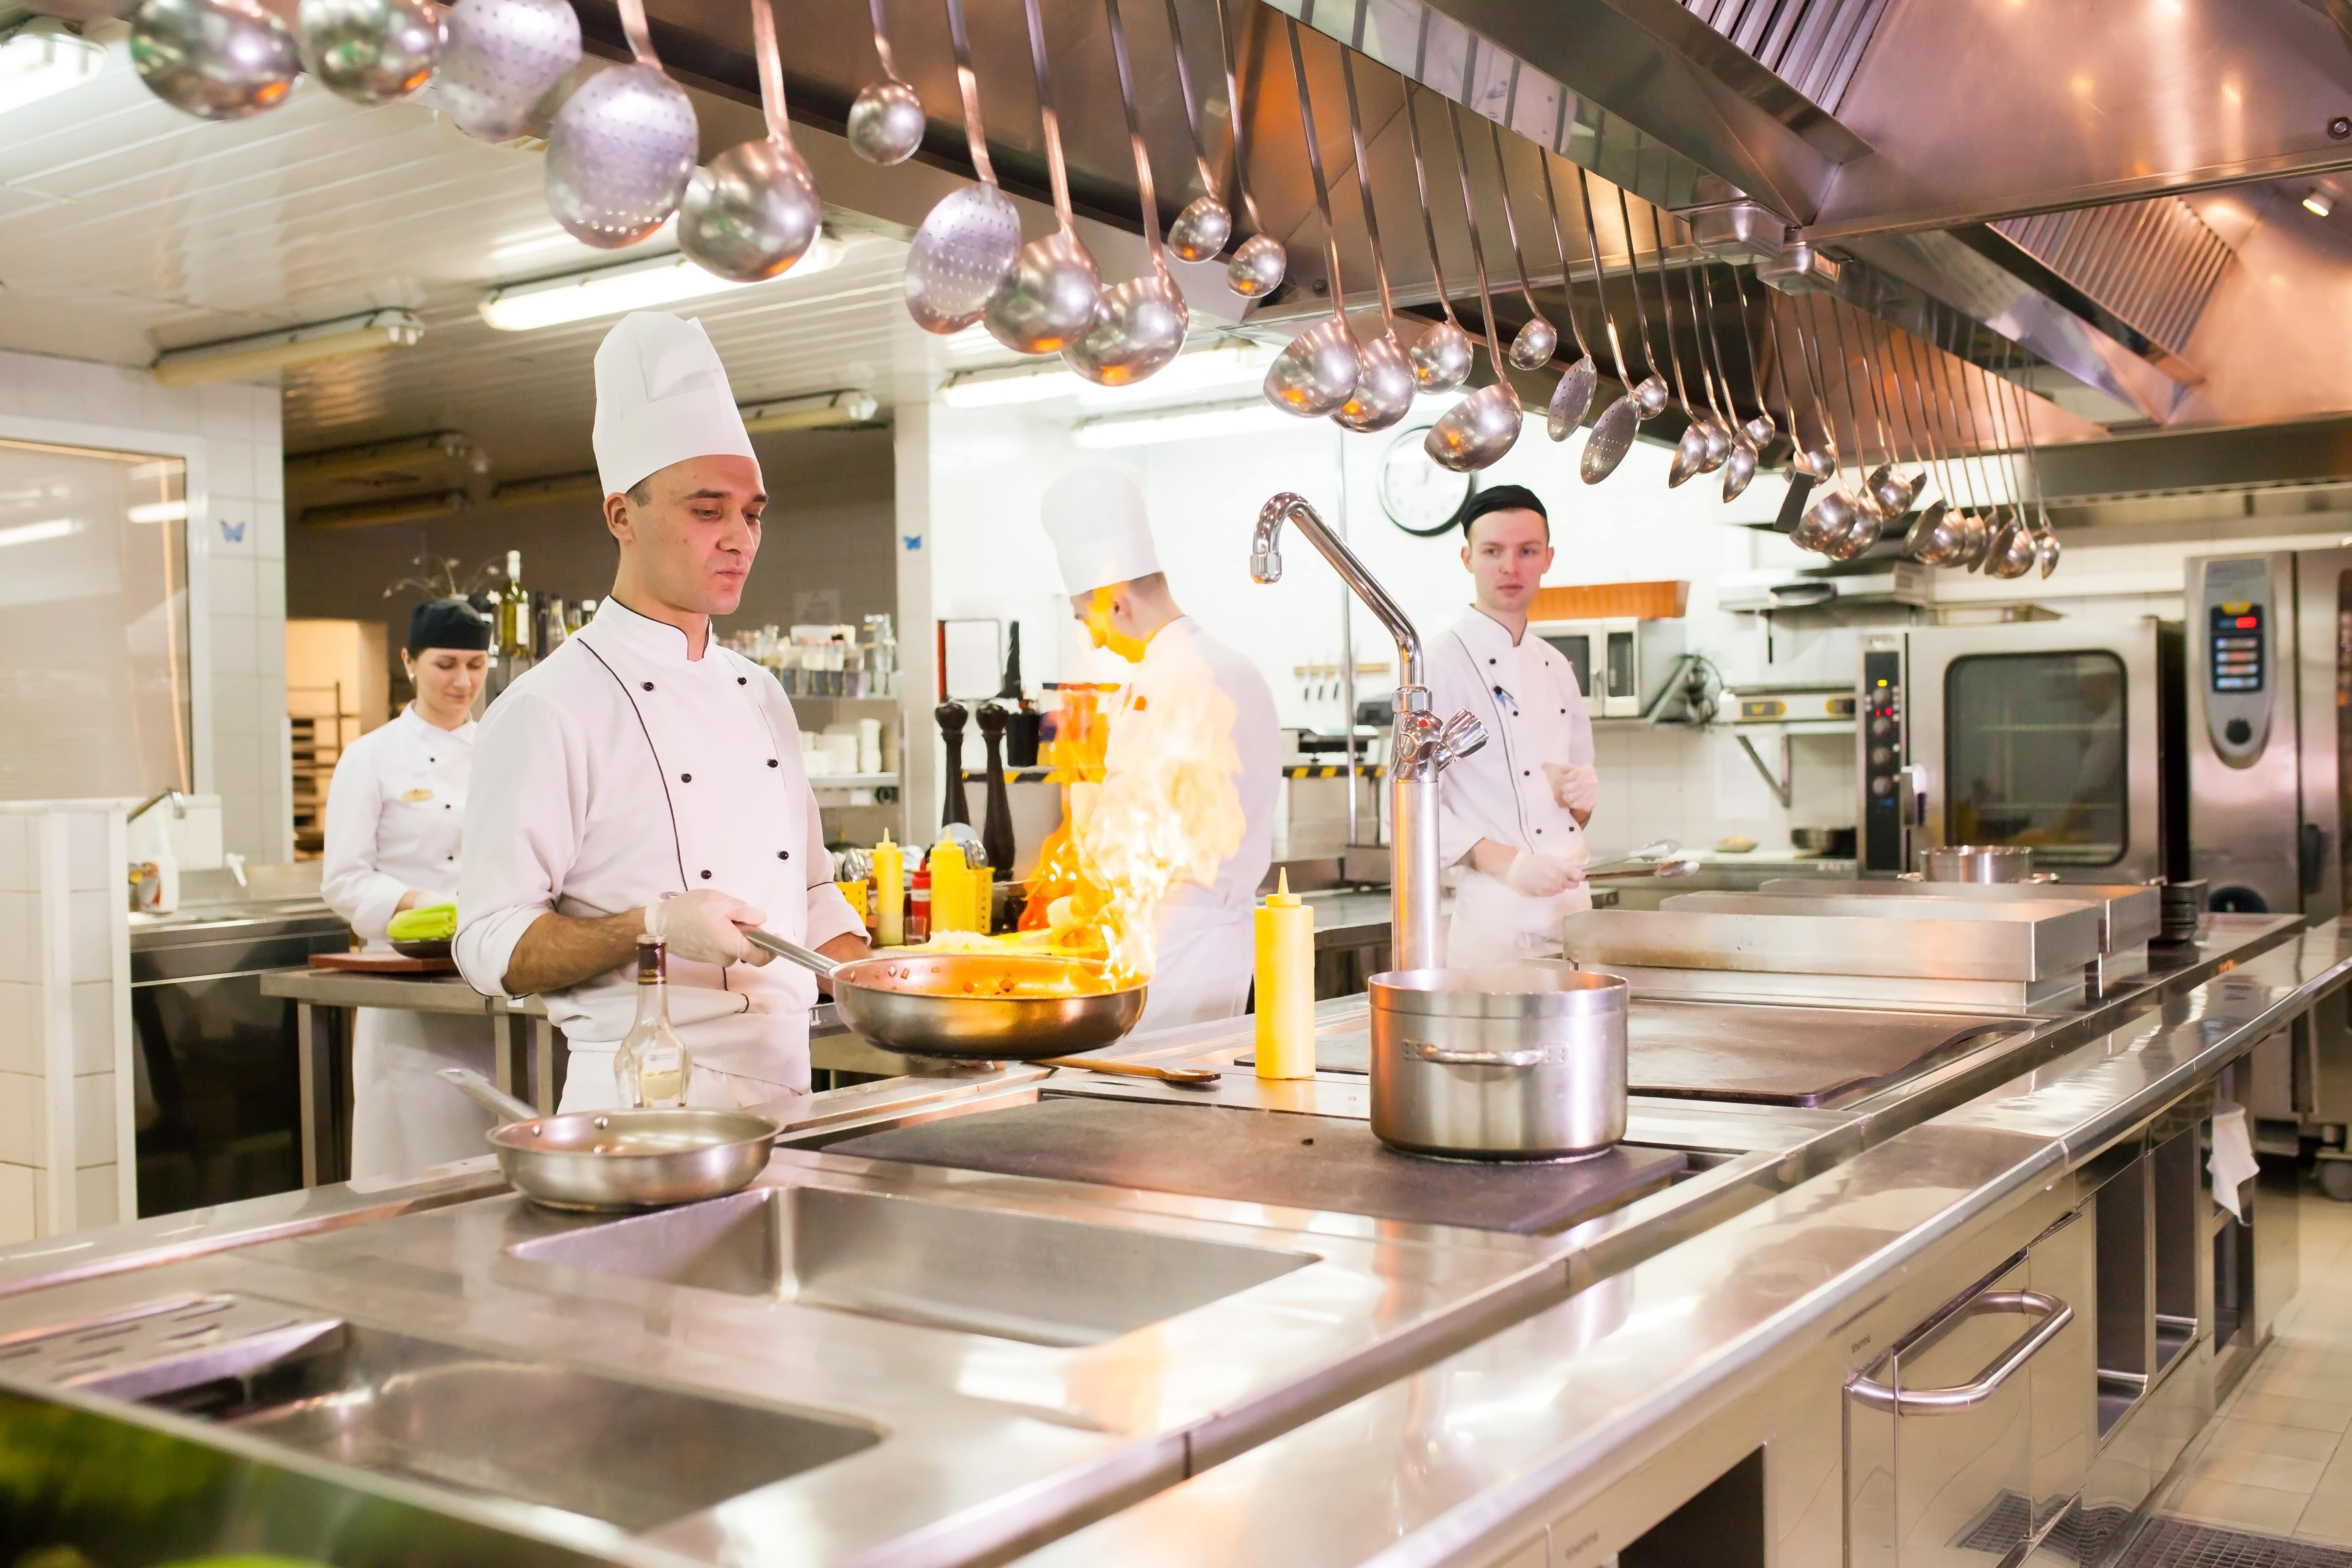 Kitchen Display Systems: 3 Benefits for your Restaurant Back of House